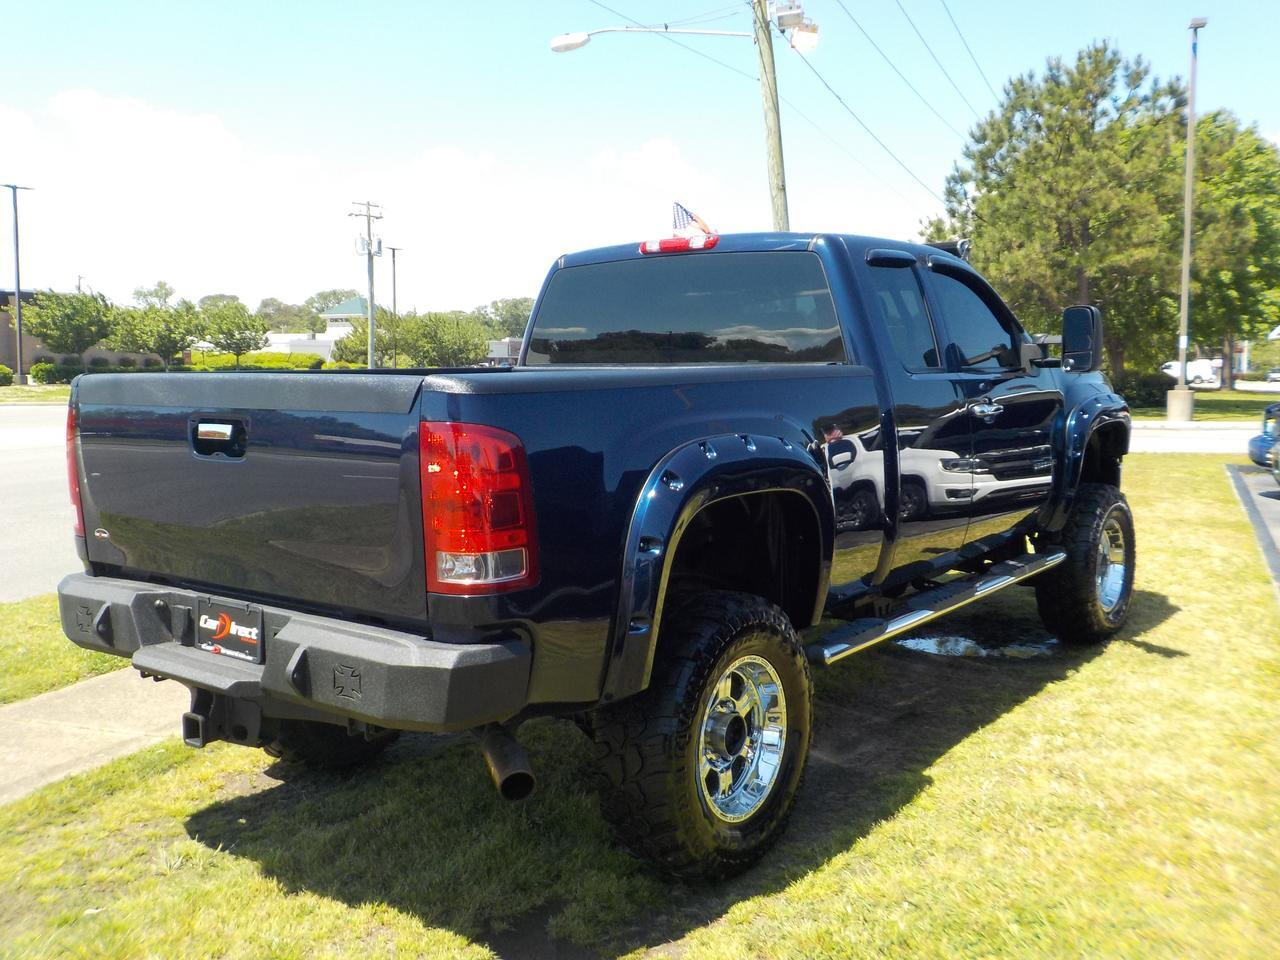 2011 GMC SIERRA 2500 HD EXTENDED CAB 4X4, WARRANTY, LIFTED,  FENDER FLARES, BLUETOOTH, BED LINER, TOW, ONSTAR! Virginia Beach VA